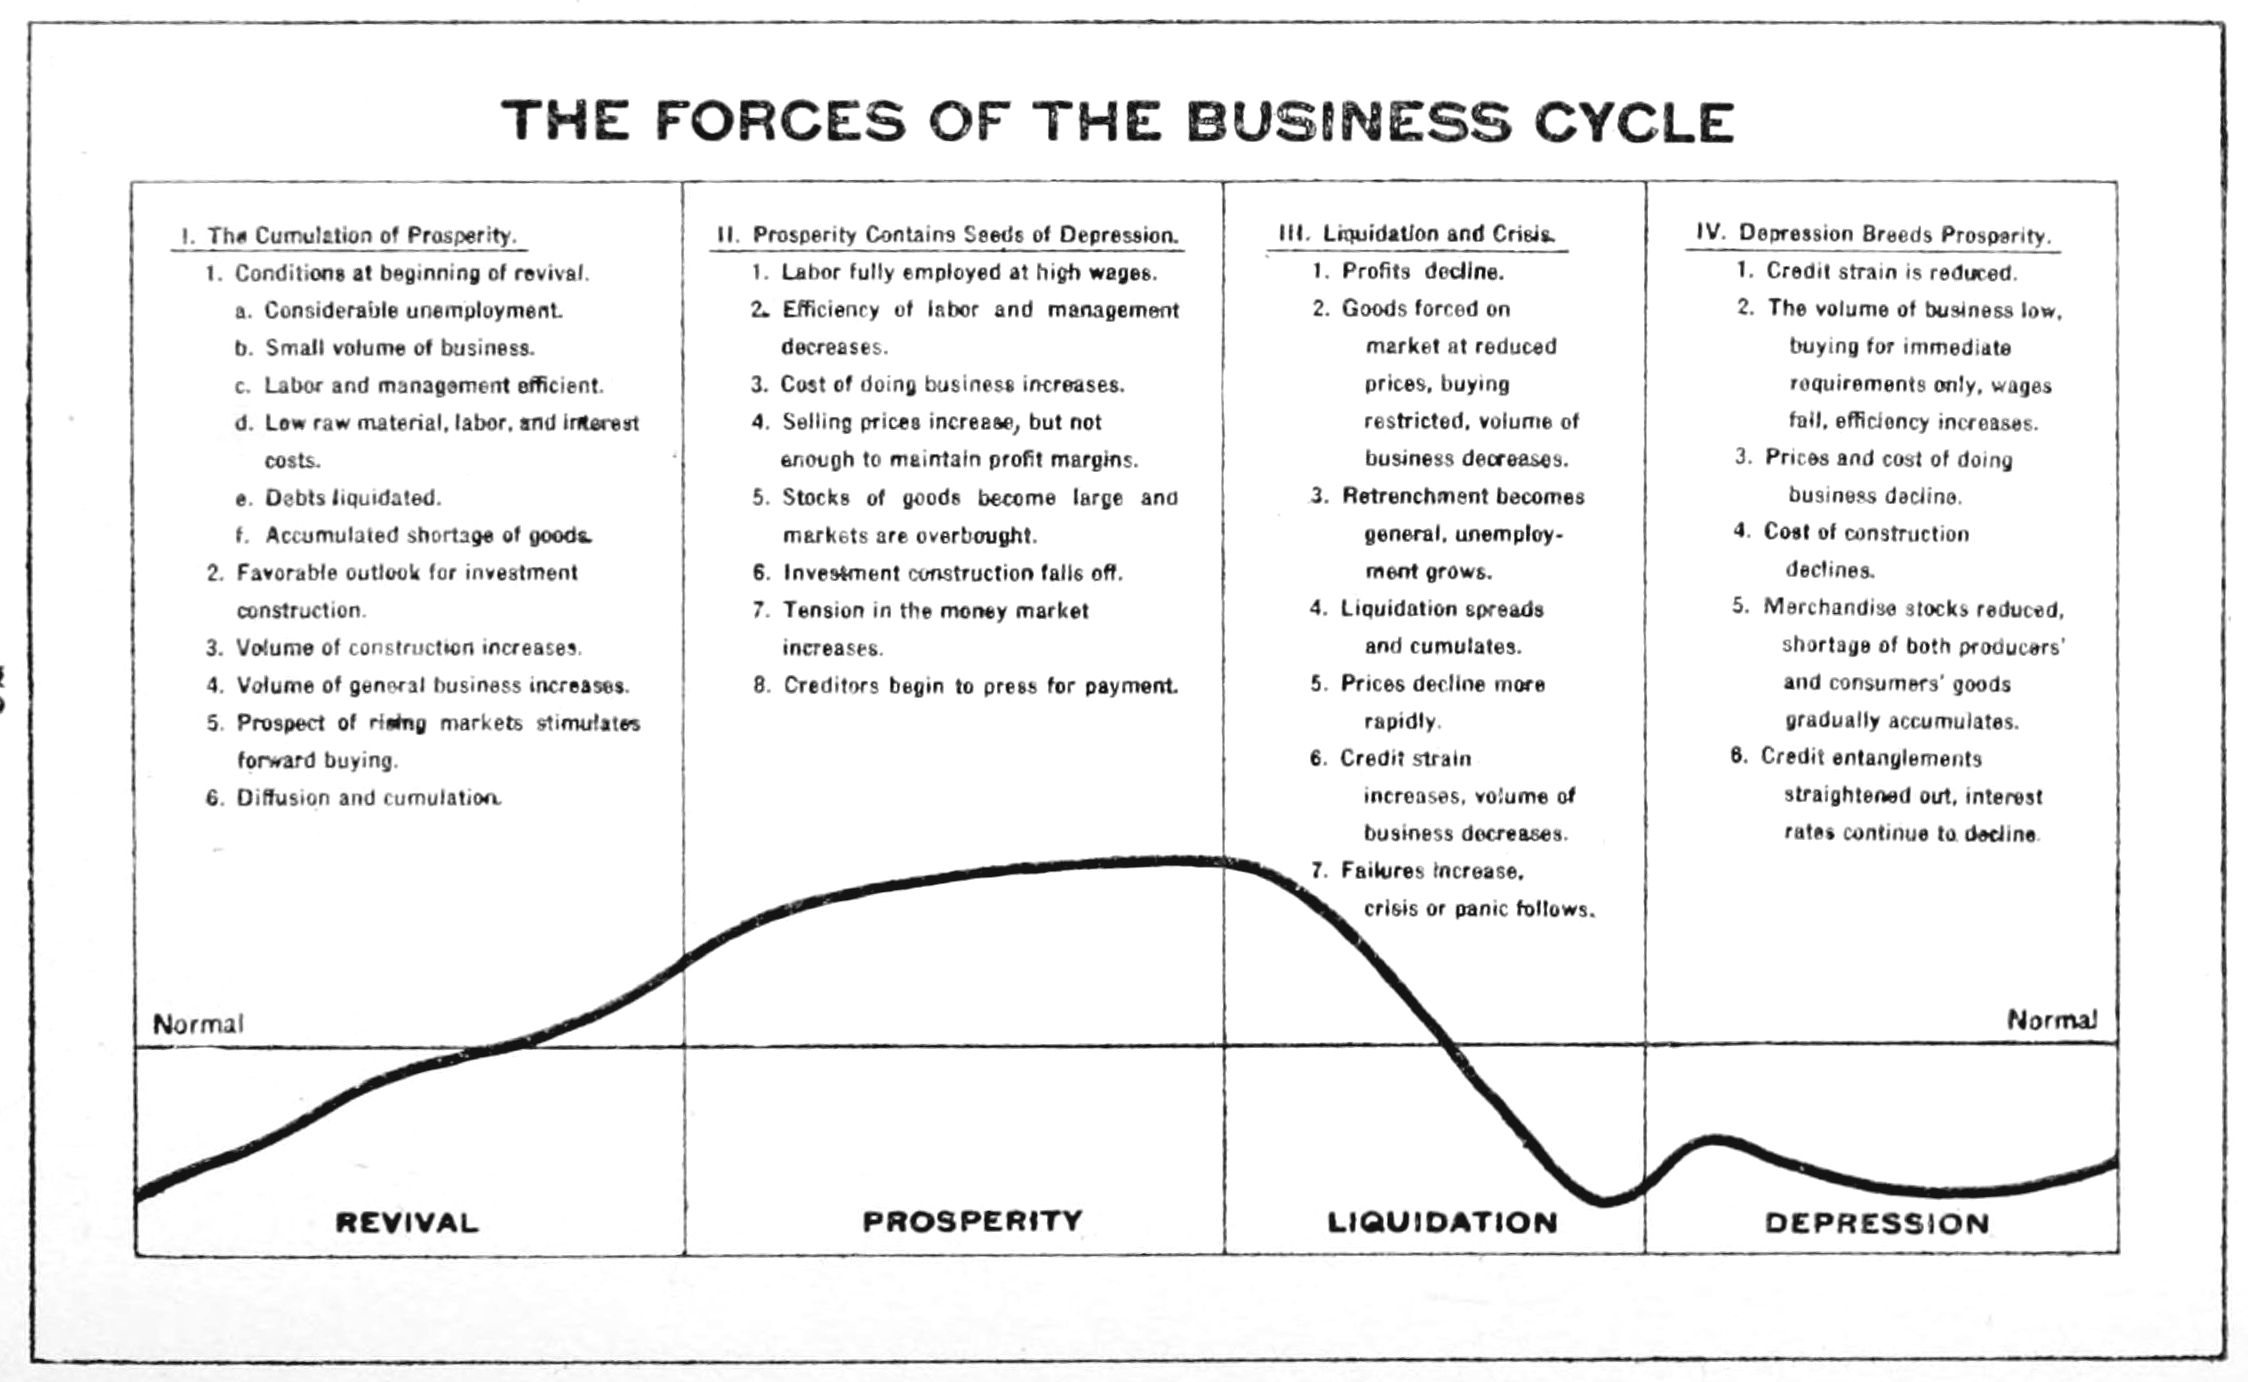 business cycle essay the business cycle and economic growth theory business cycle essay the business cycle and economic growth theory of real business cycles and economic fluctuation business cycle